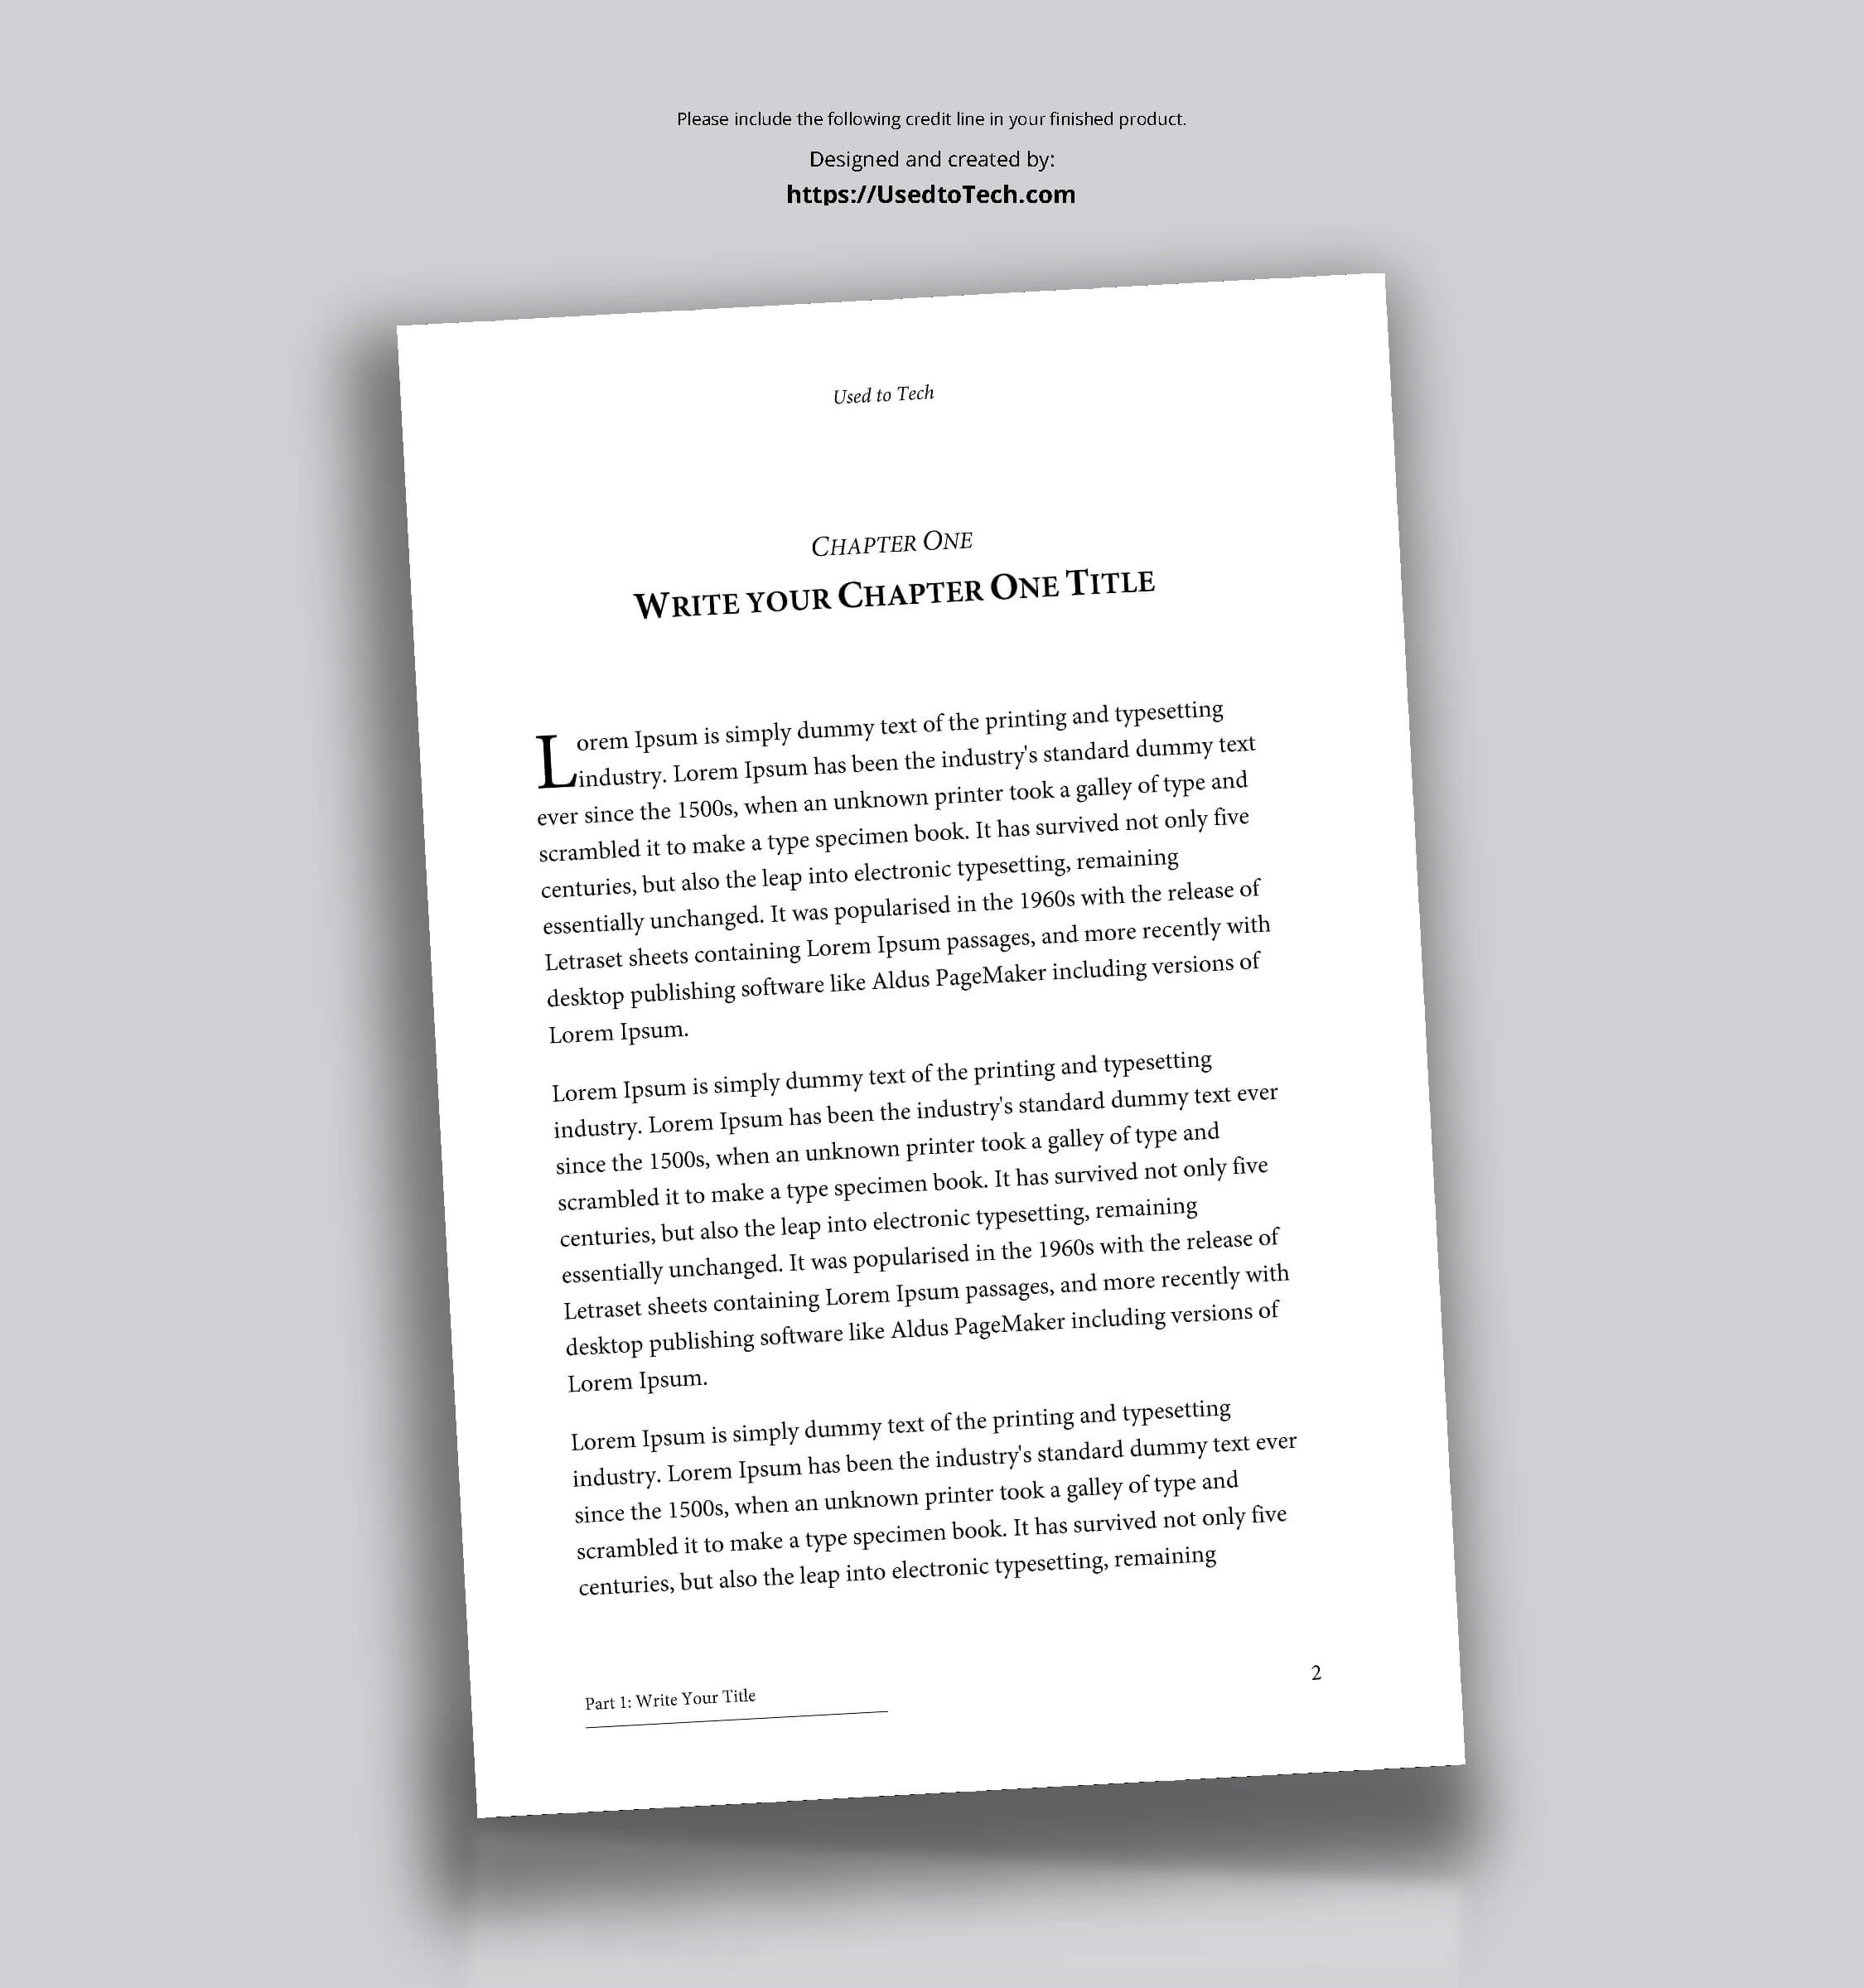 Professional Looking Book Template For Word, Free - Used To Tech In How To Create A Book Template In Word